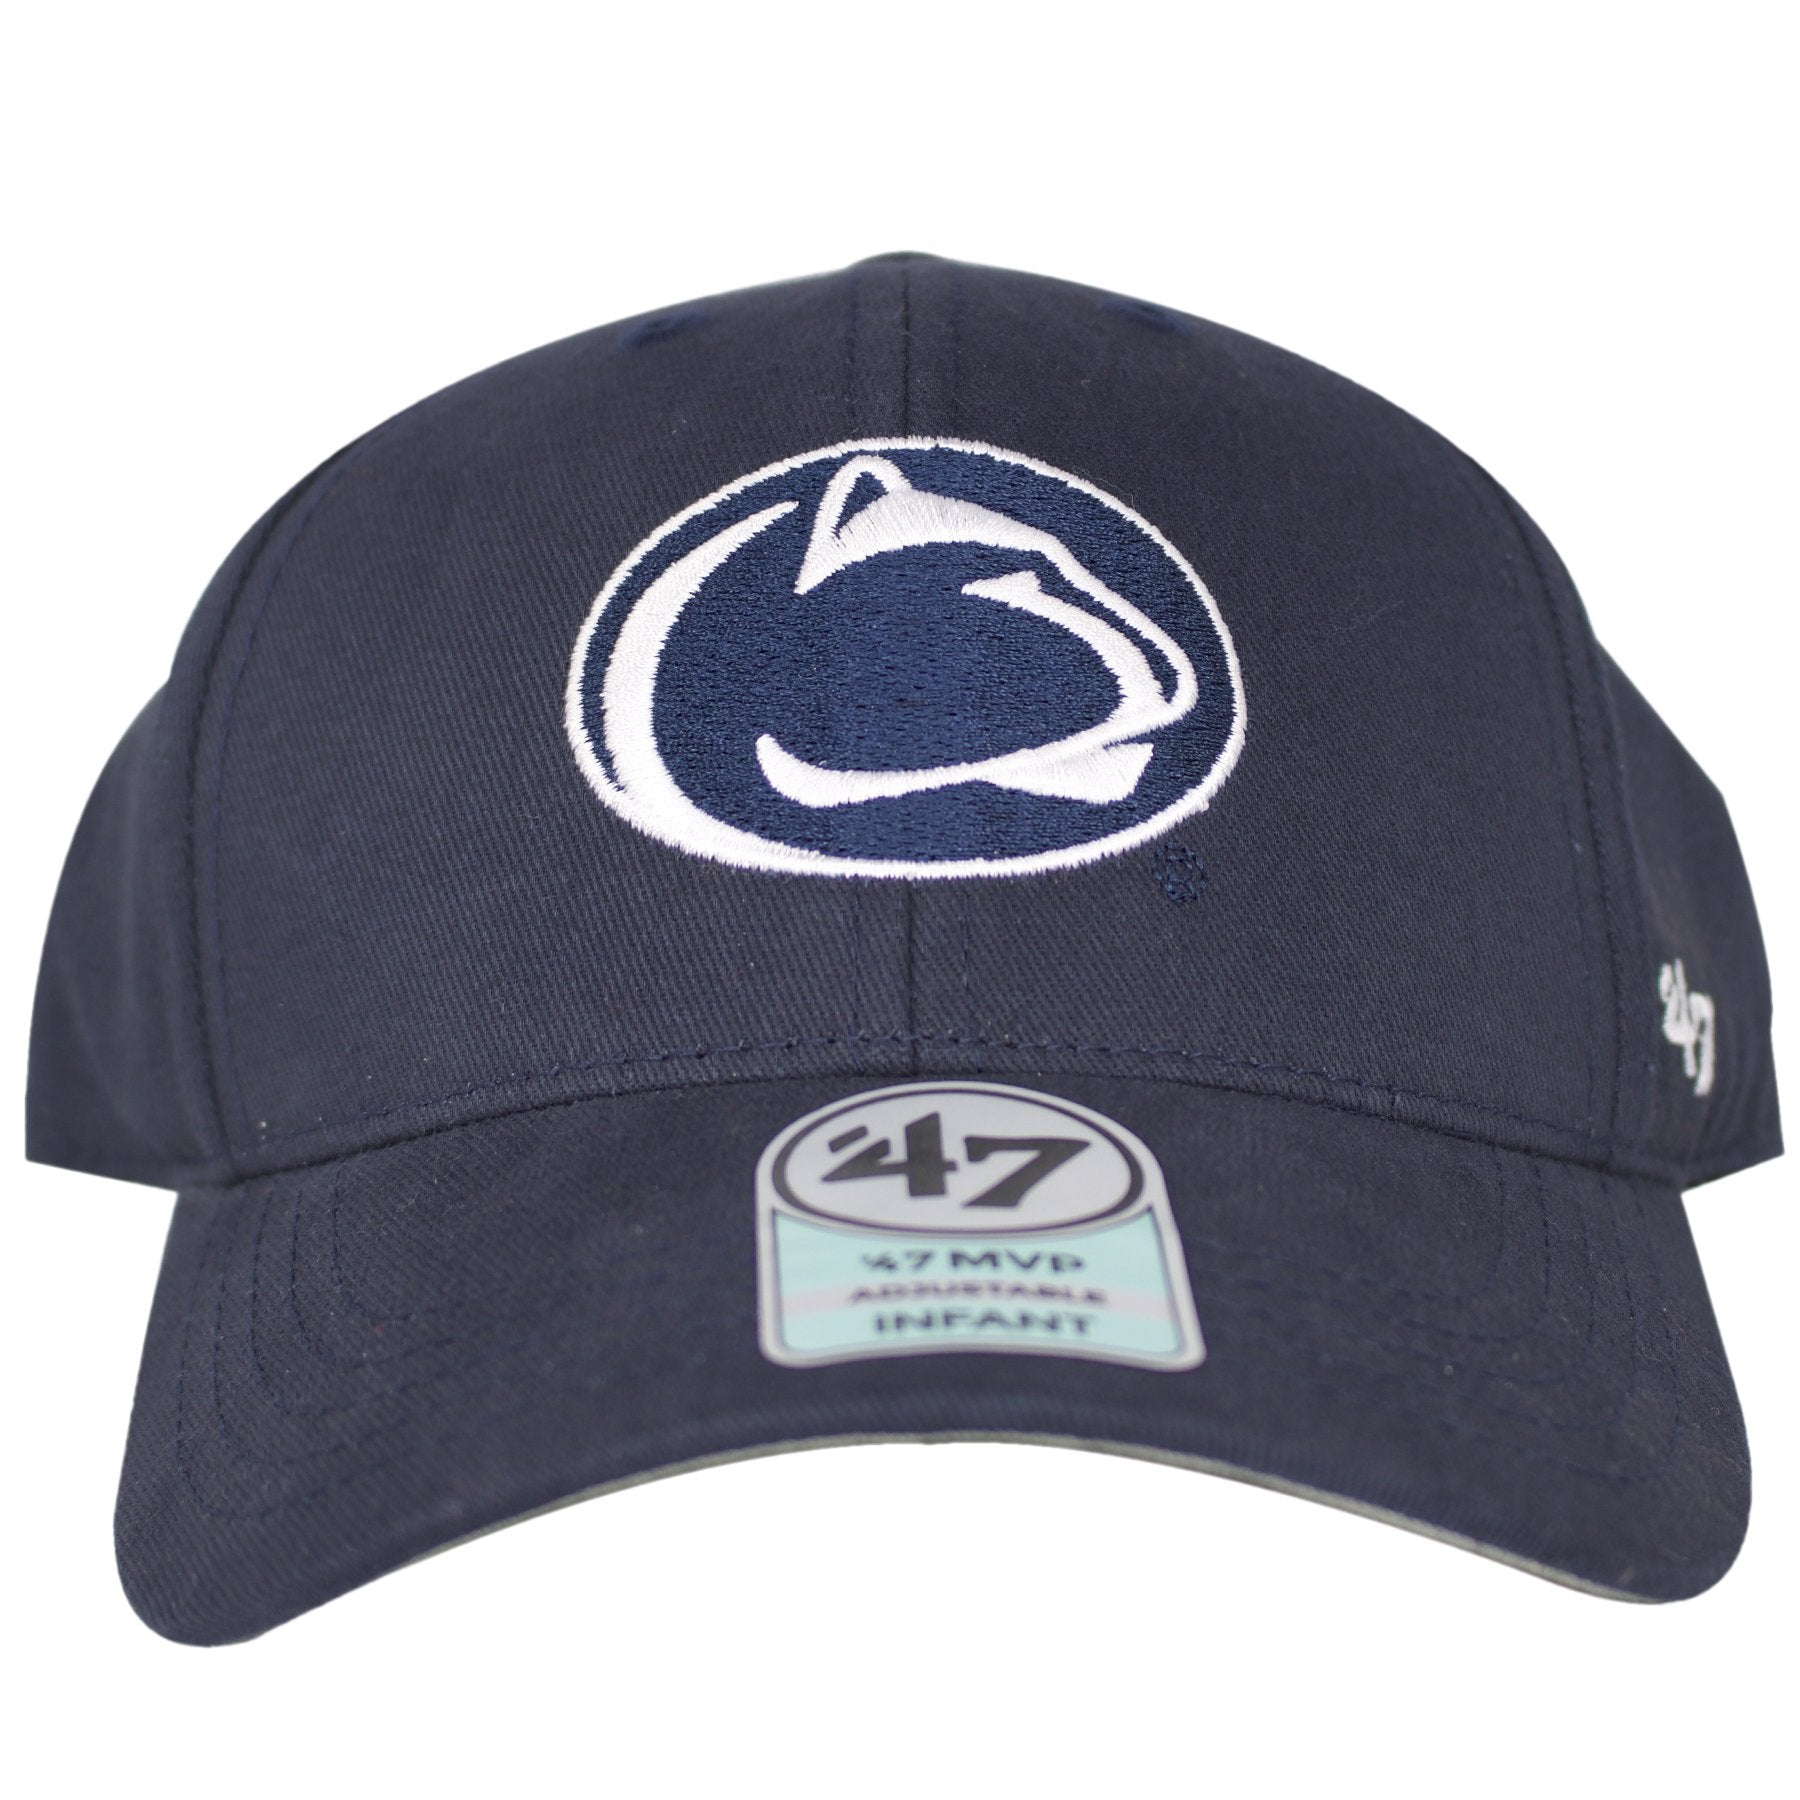 a3cda3b9fe057 Penn State Nittany Lions logo can be seen embroidered on the front of this  Basic MVP